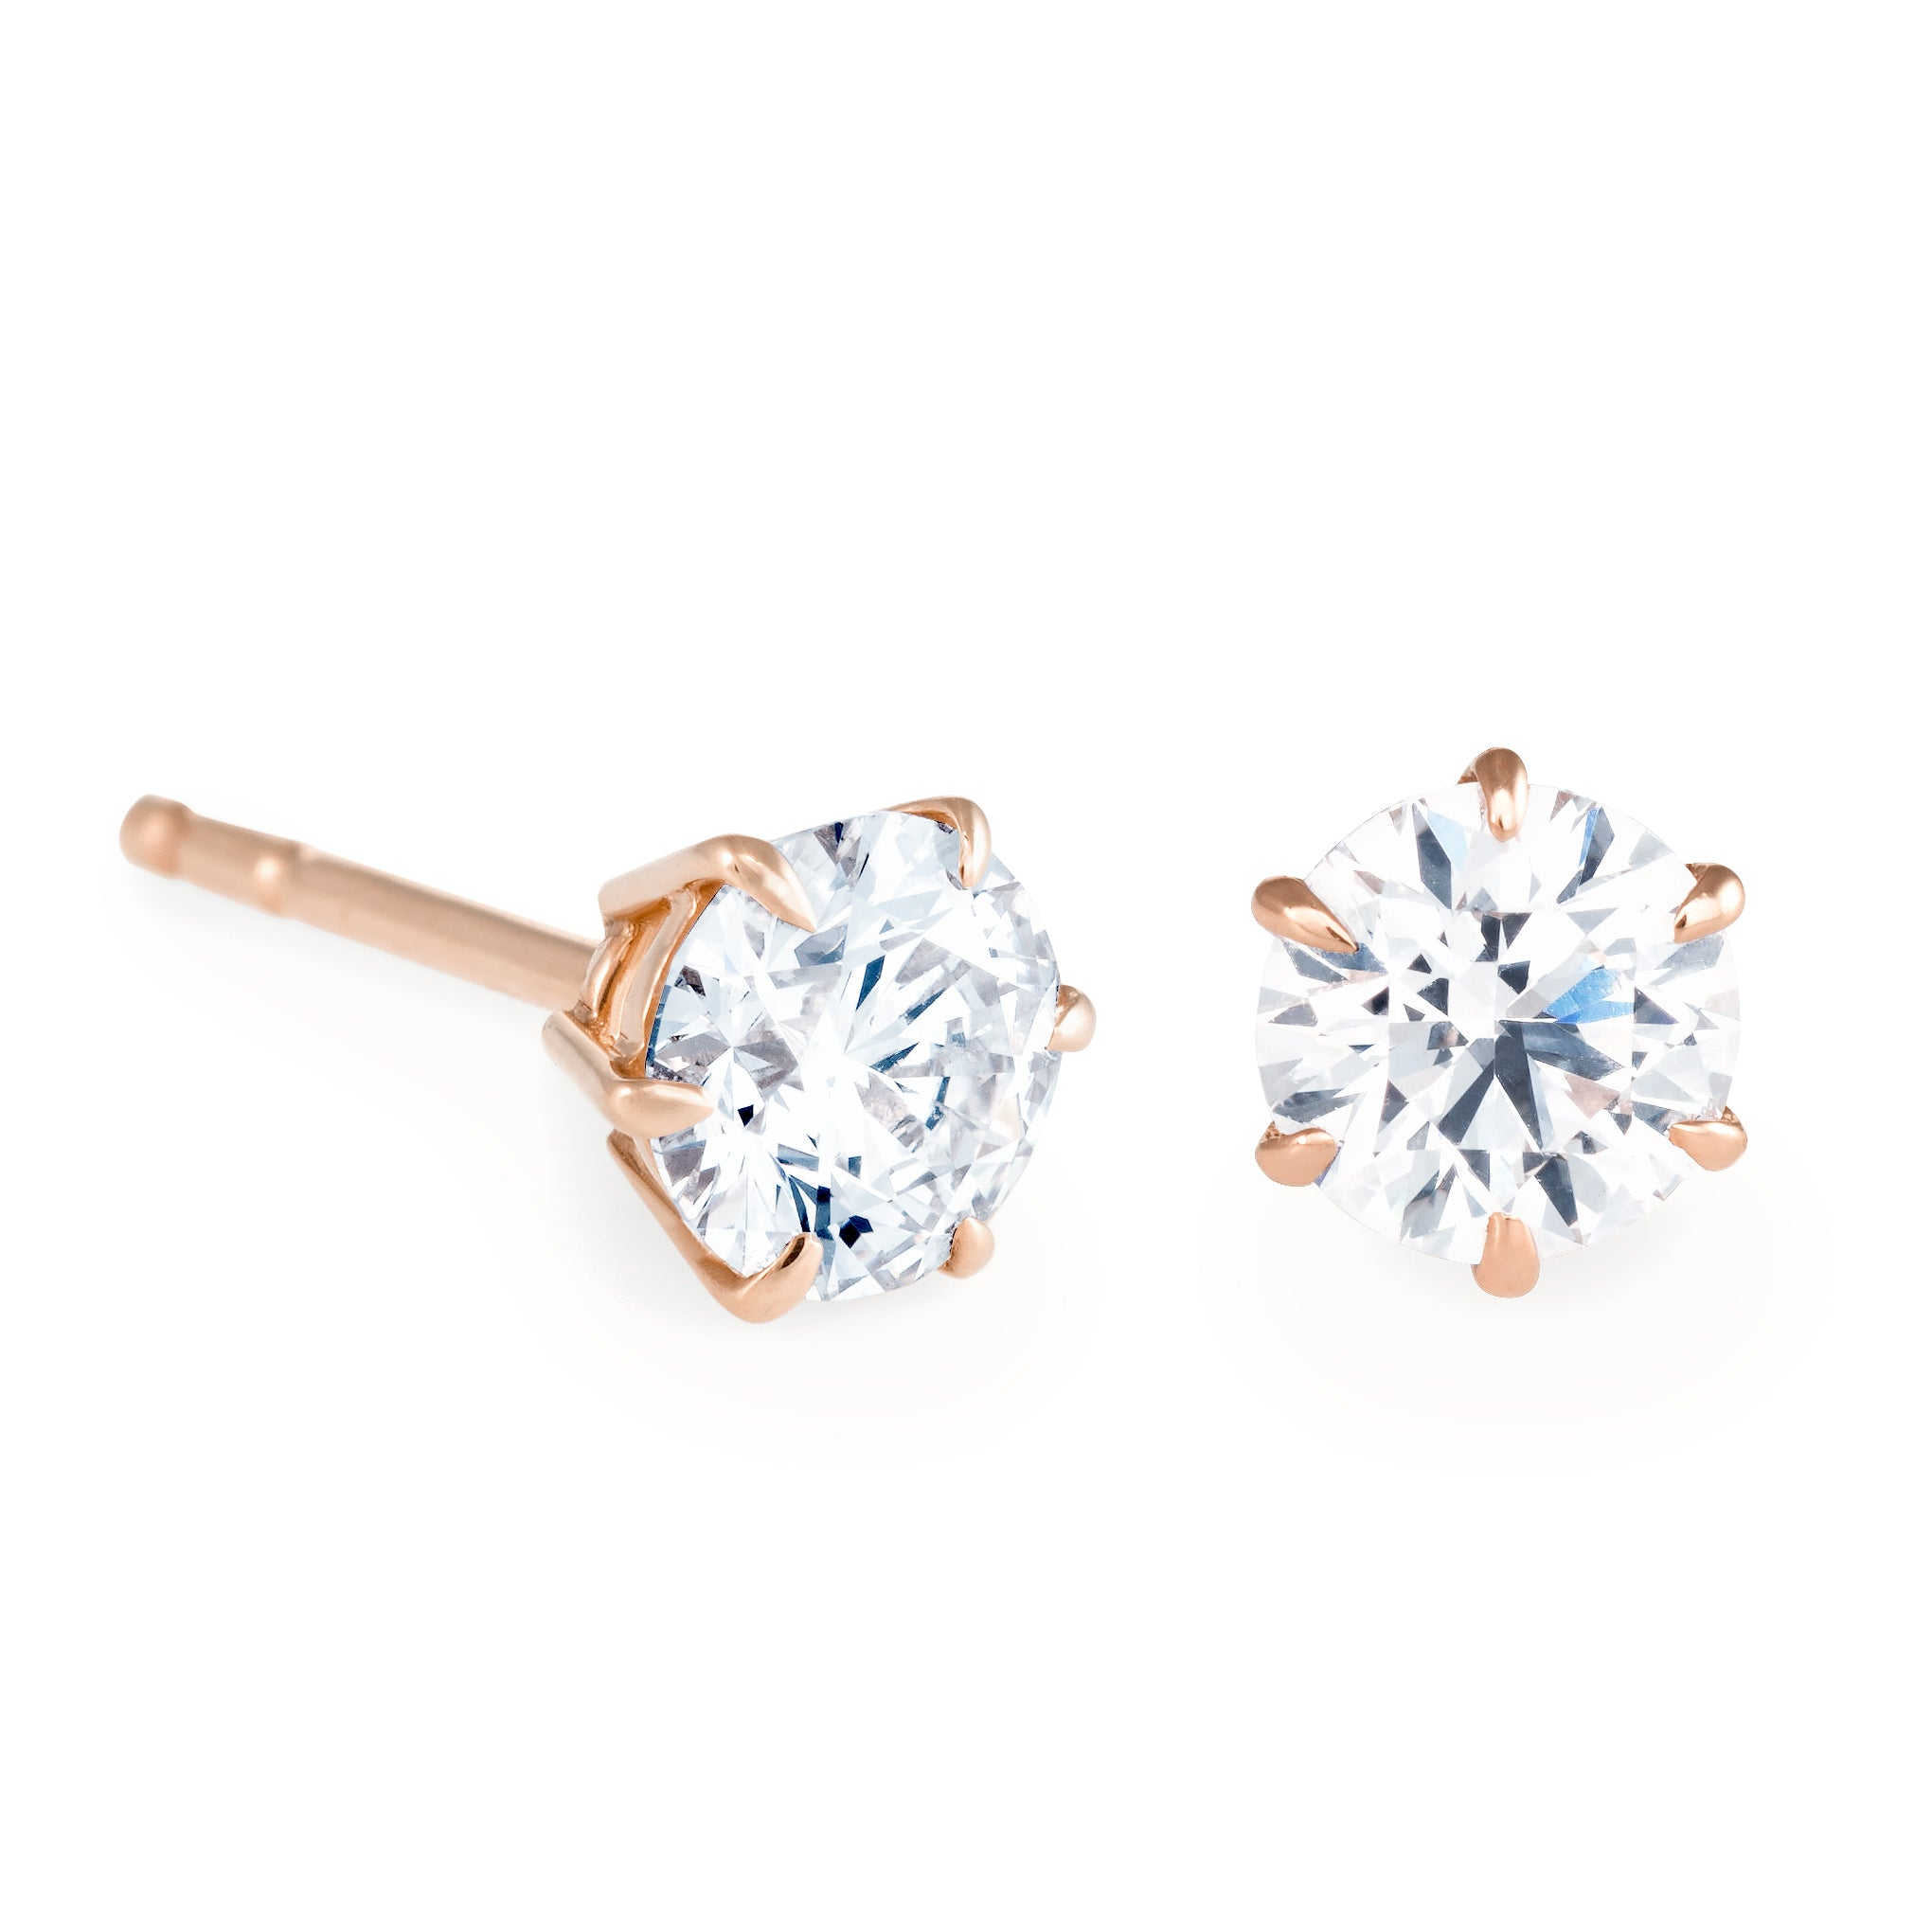 stud metal color sell src s solitaire prod cut net a p select round ladies dia yg we earrings jewelwesell jewel diamond